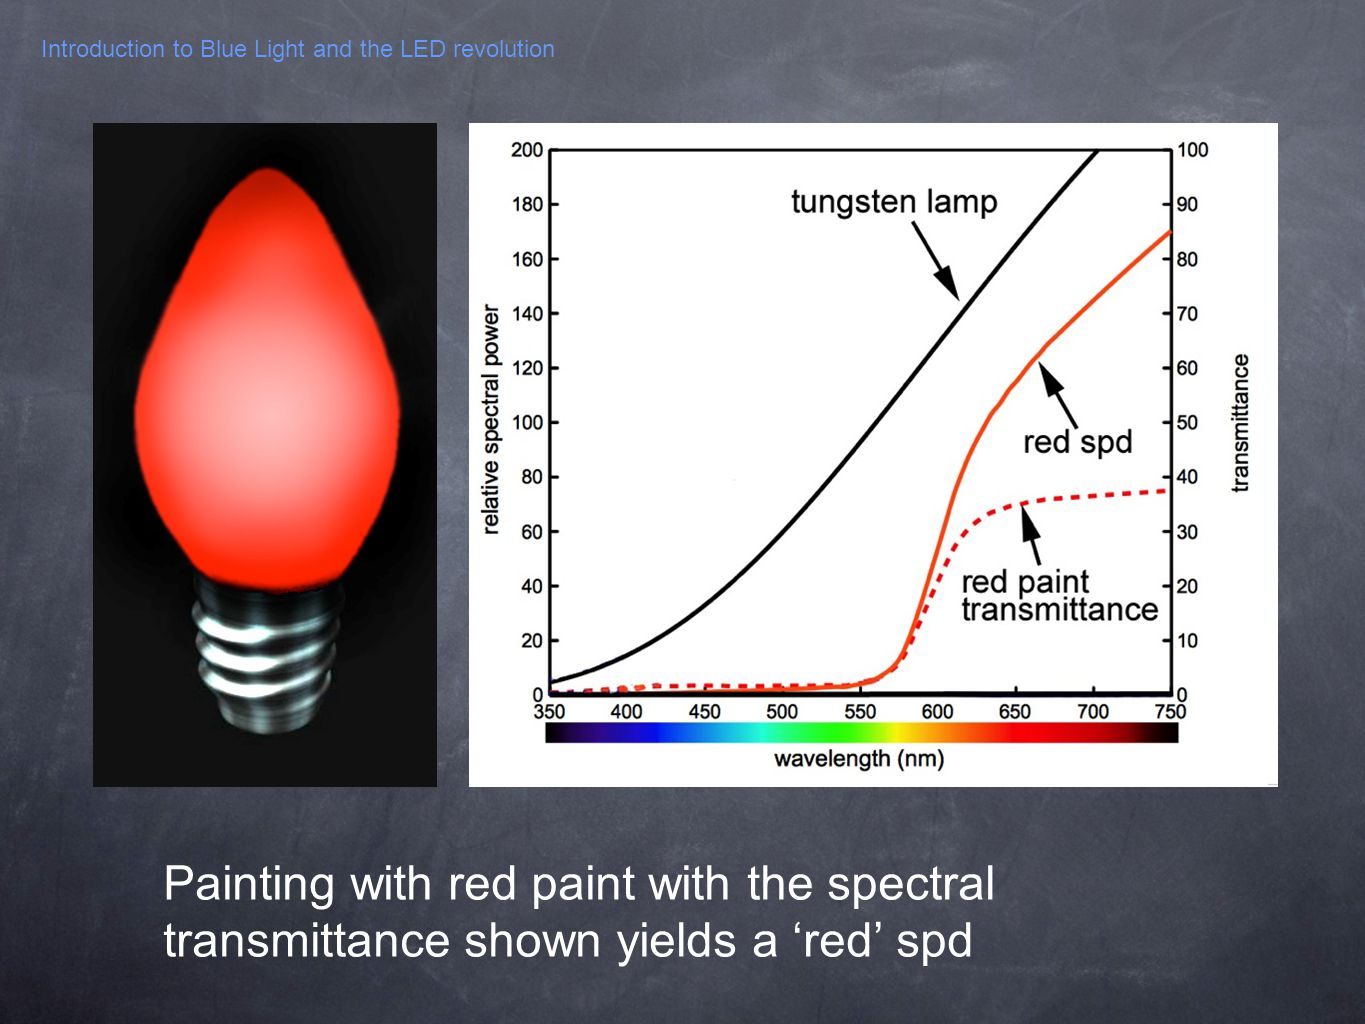 Introduction to Blue Light and the LED revolution Painting with red paint with the spectral transmittance shown yields a red spd